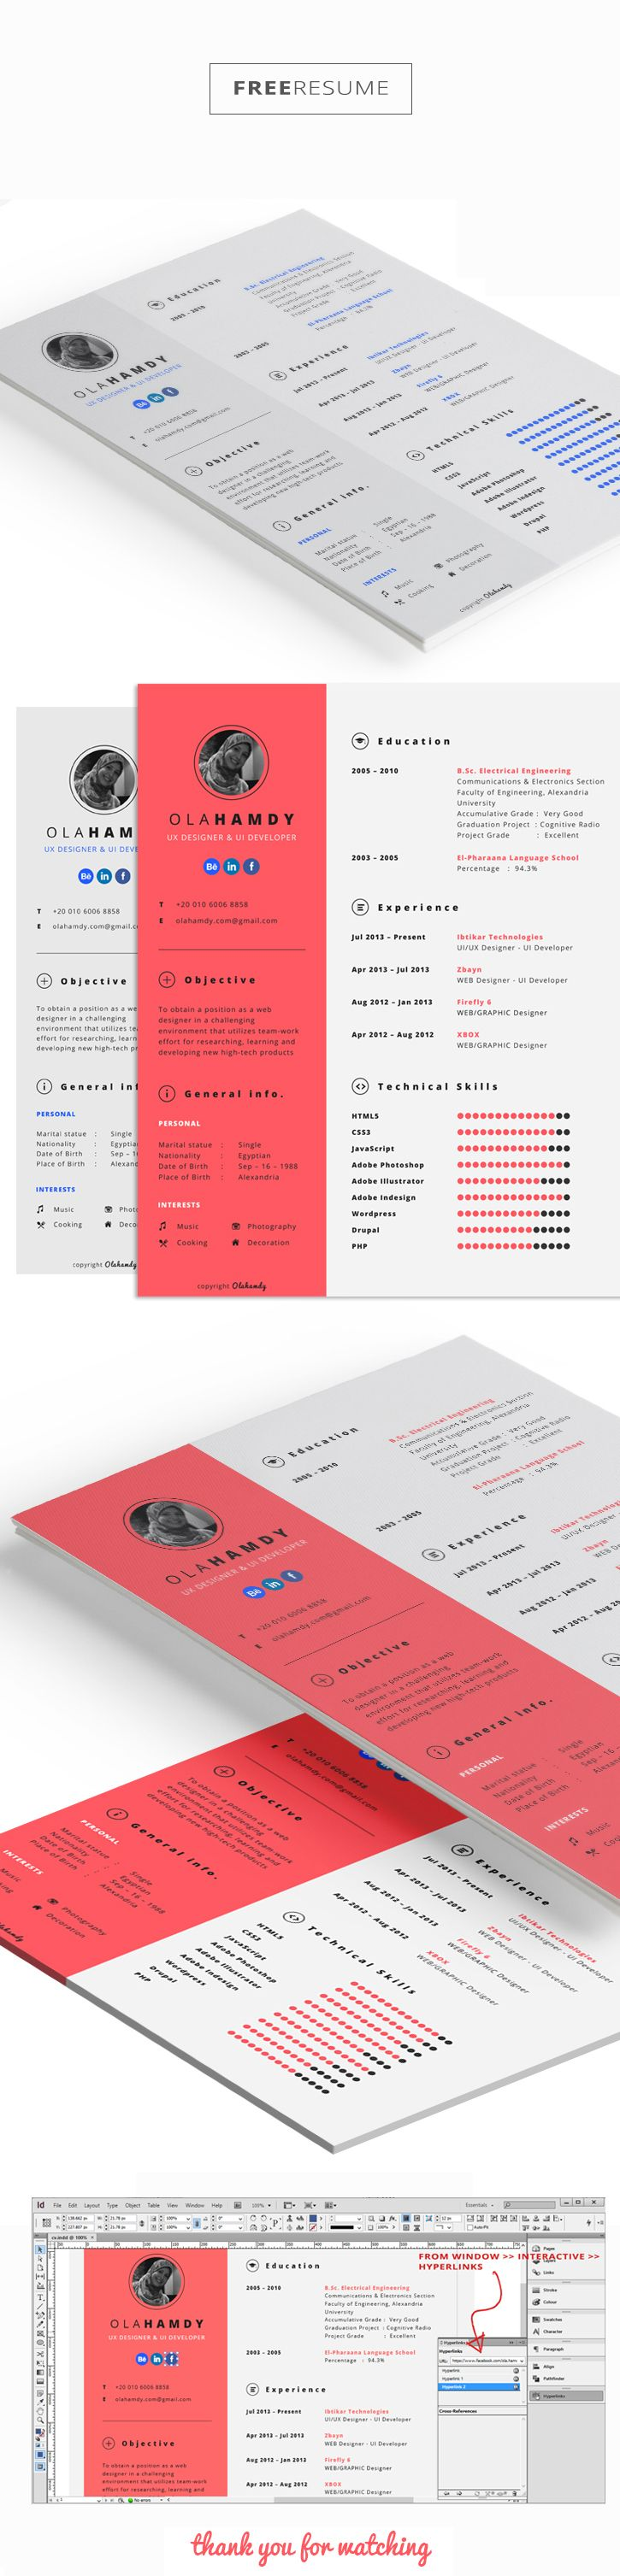 free clean interactive resume on behance resume design